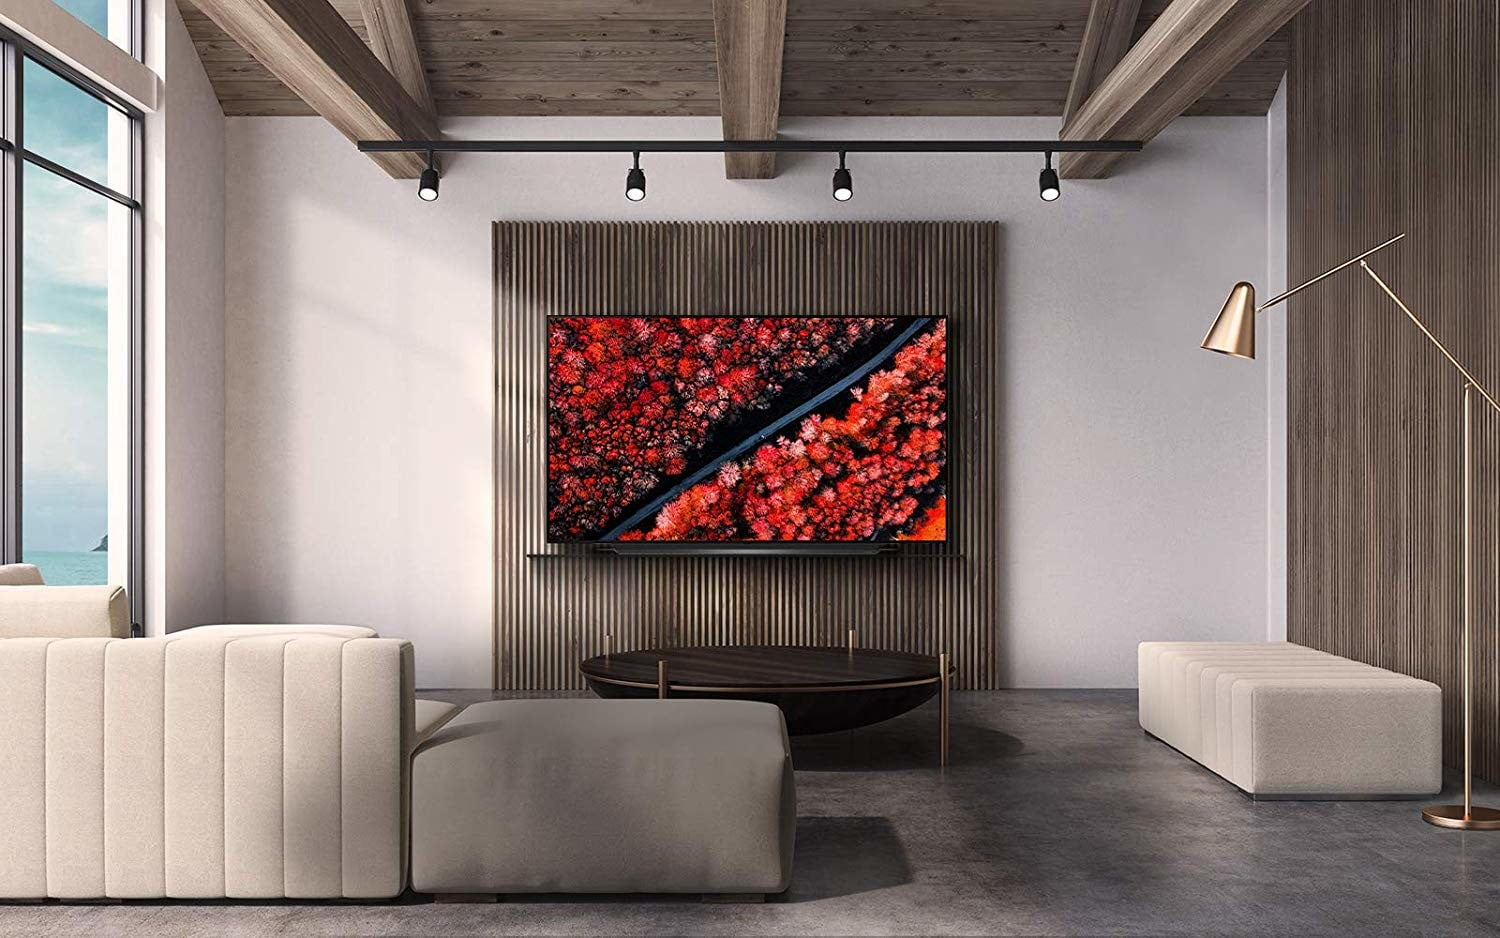 Best TVs for 2019: Here's the Perfect 4K HDR for You